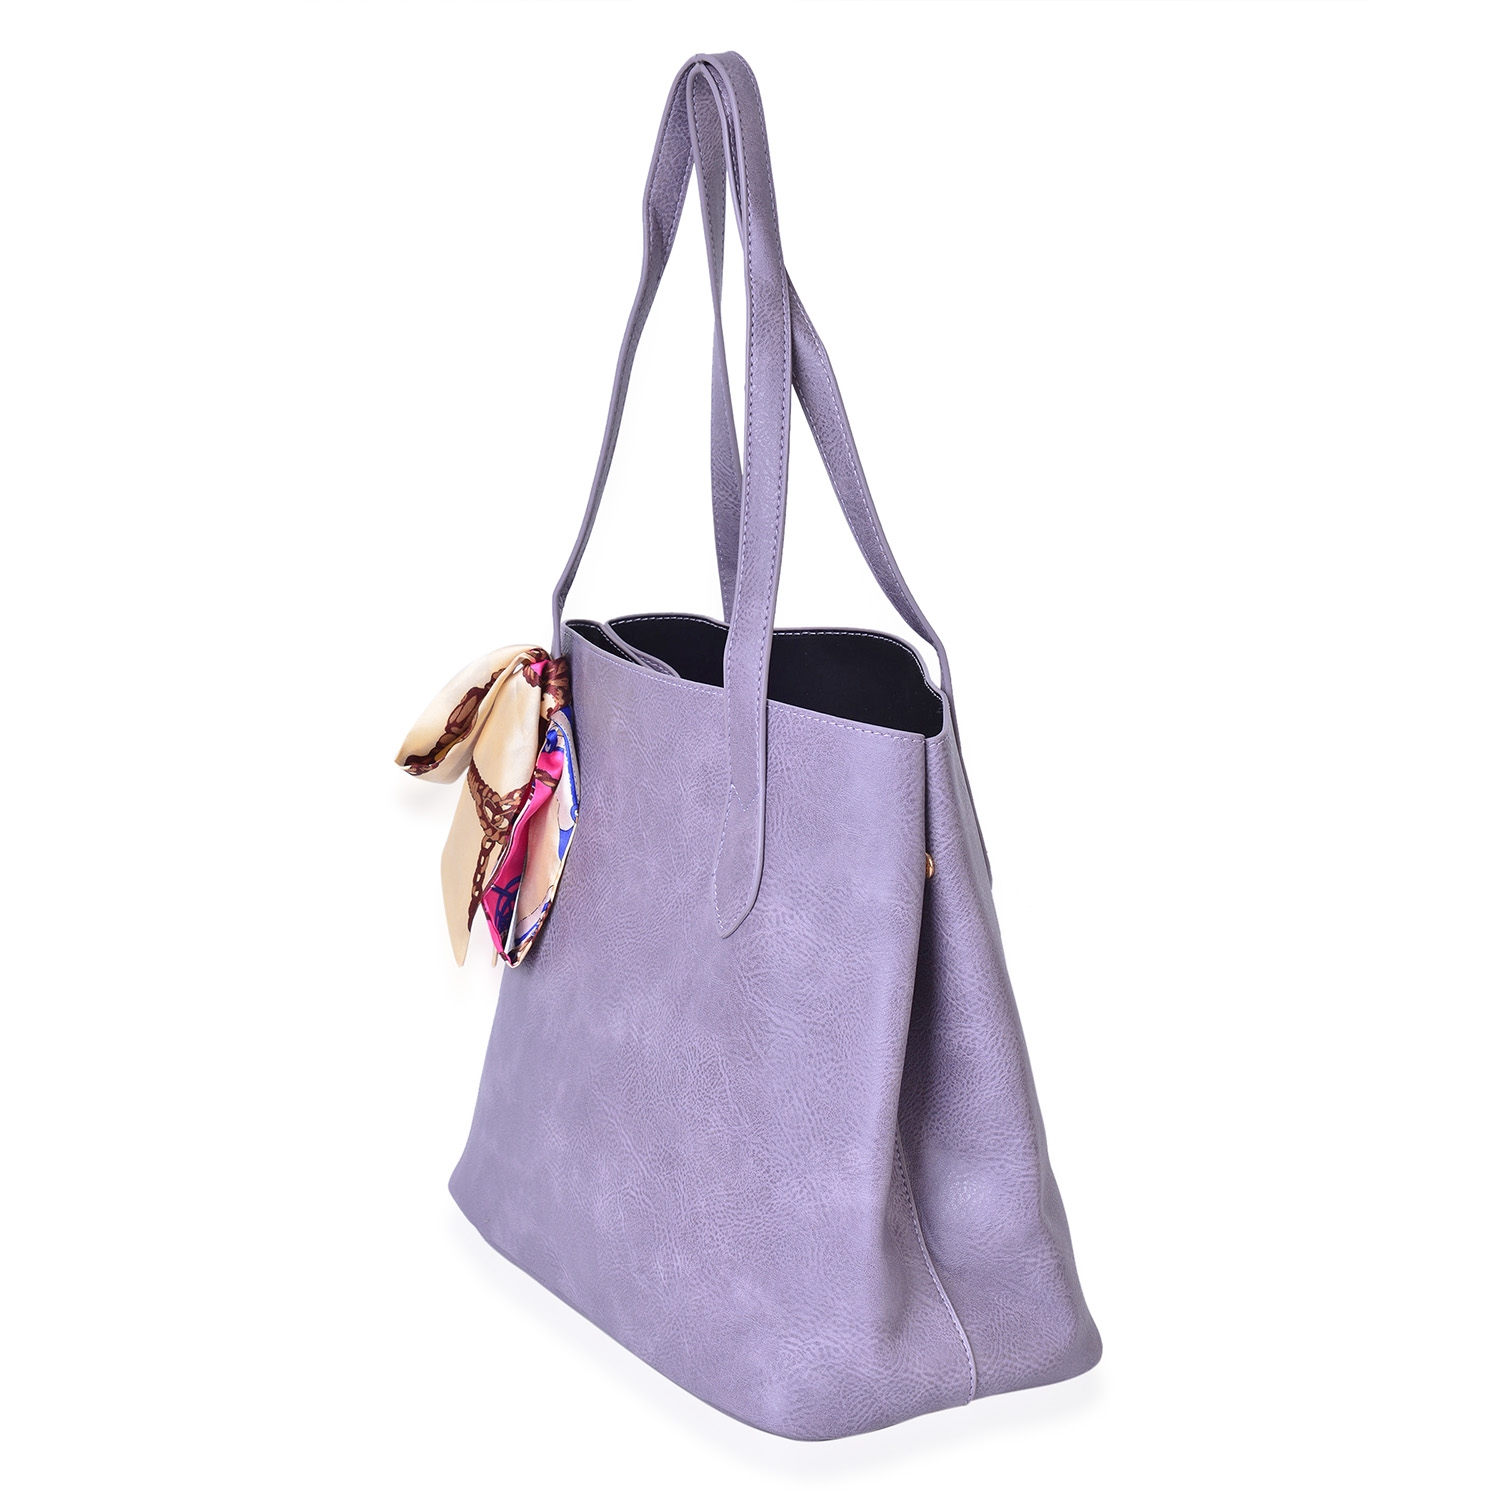 aaeaecb0b7 Lilac Faux Leather Tote Bag with Detachable Interior Pockets (14x5.5x12.5  in) and Multi Color 100% Polyester Scarf (36x1.5 in)